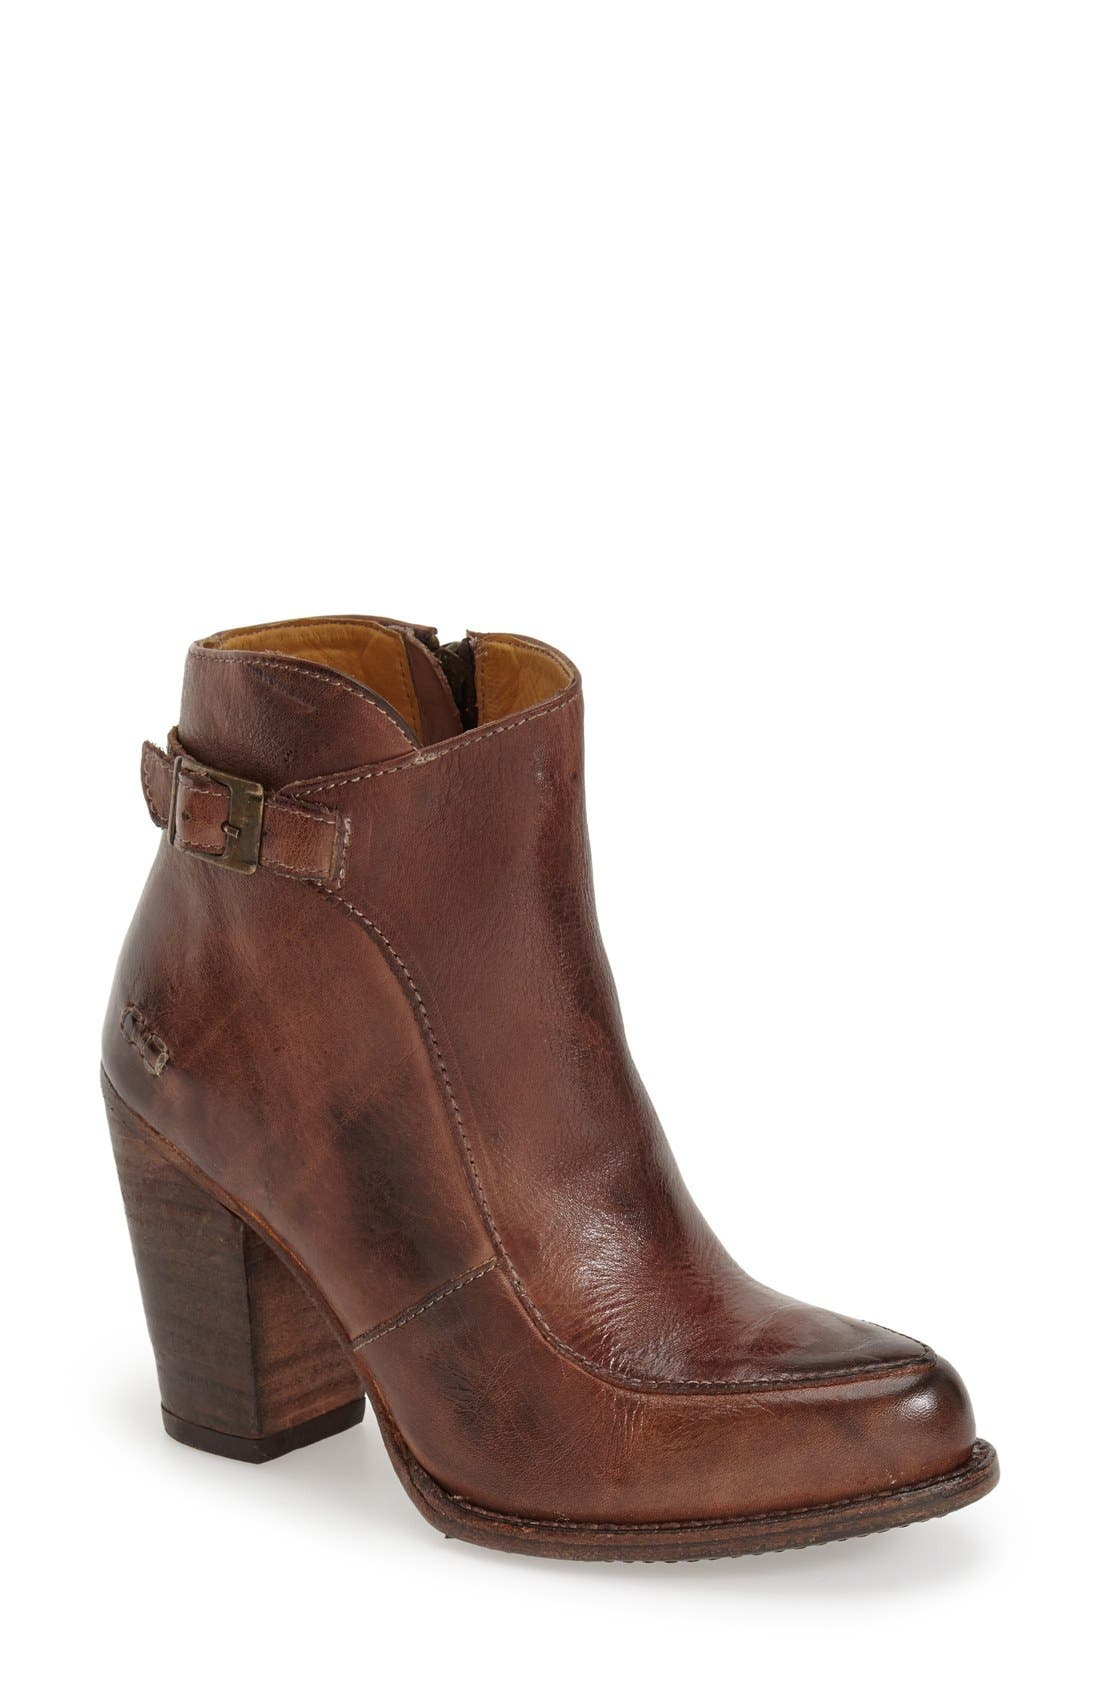 'Isla' Stacked Heel Boot,                             Main thumbnail 1, color,                             Teak Rustic Leather